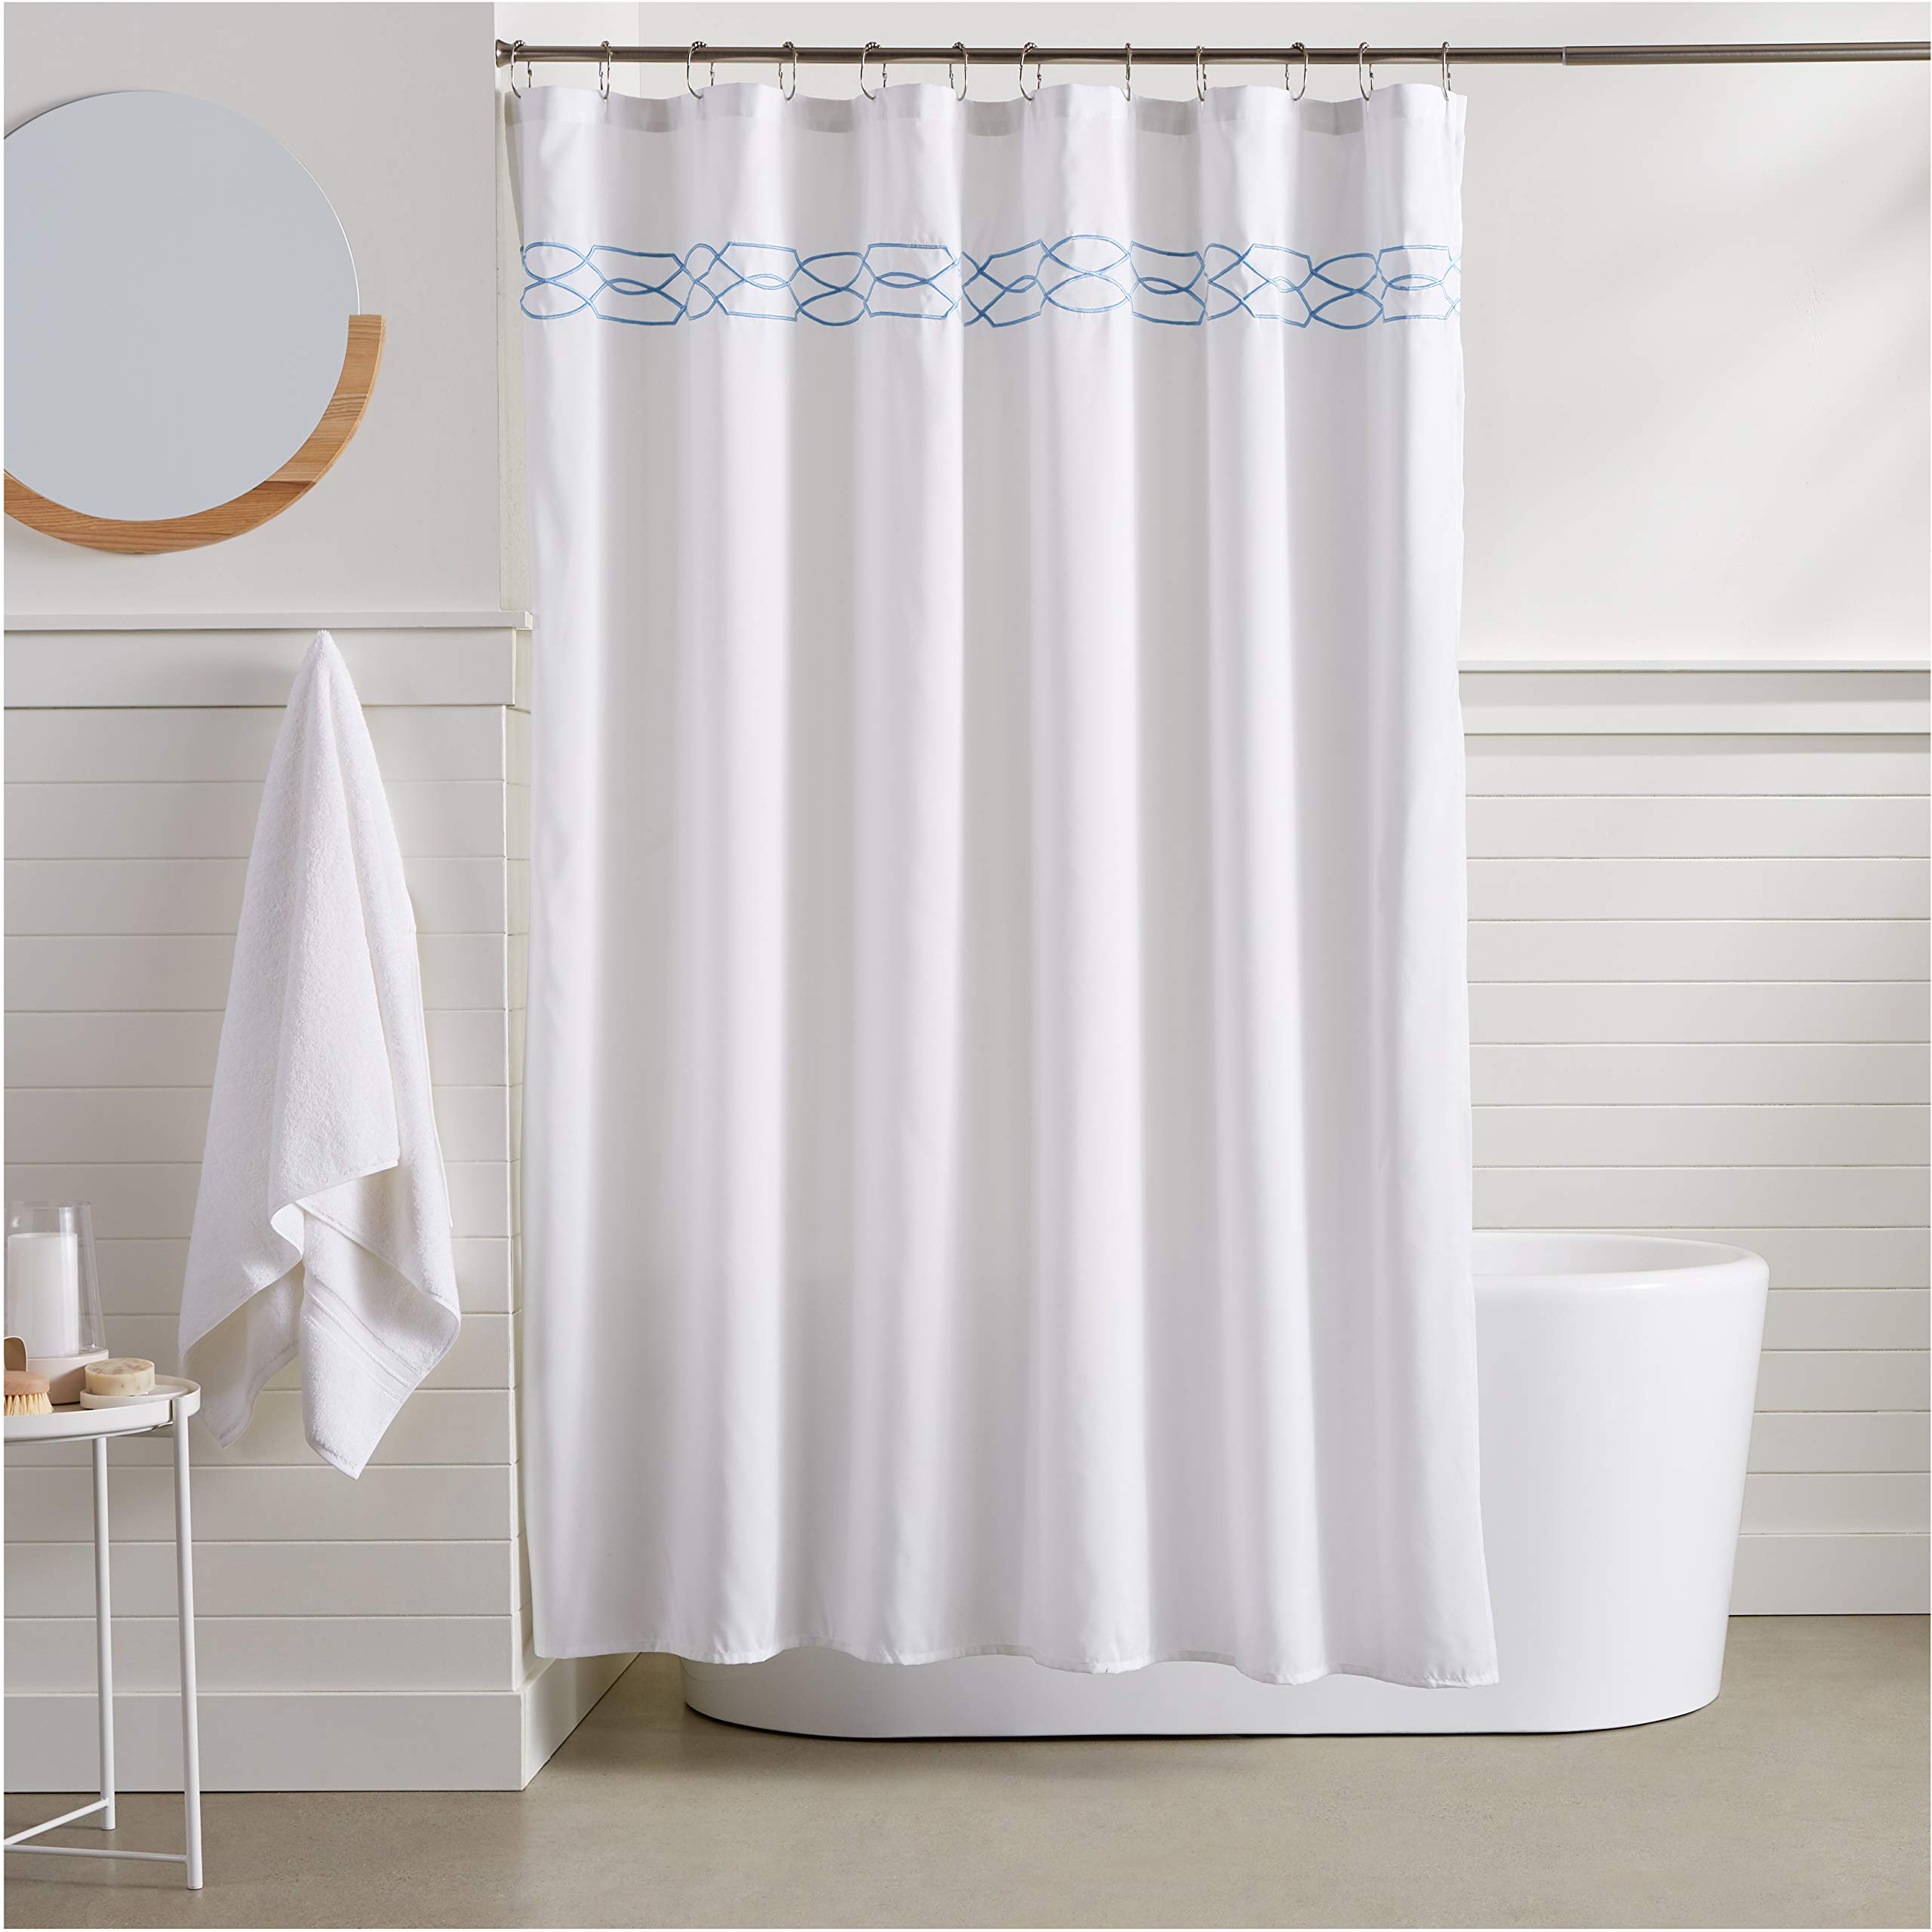 amazon hot selling manufacturer light blue trellis embroidered shower curtain mildew resistant shower curtains for bathroom buy all shower